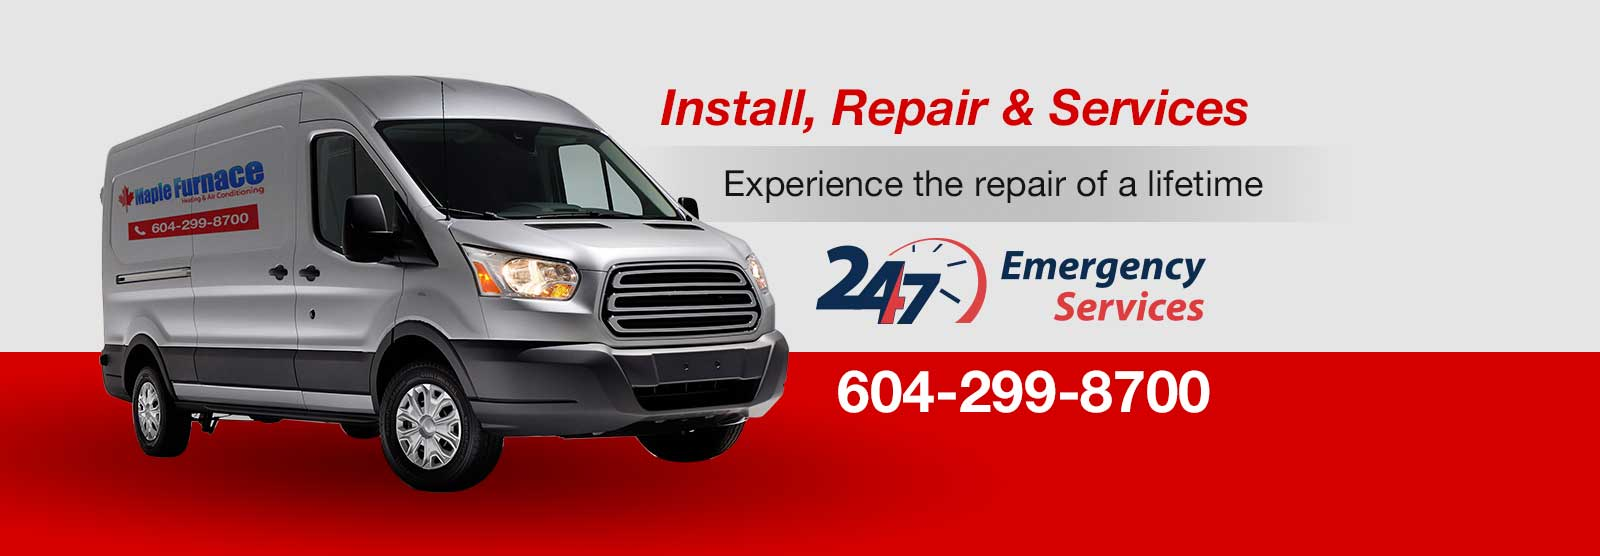 Maple-Furnace-Burnaby-Furnace-services